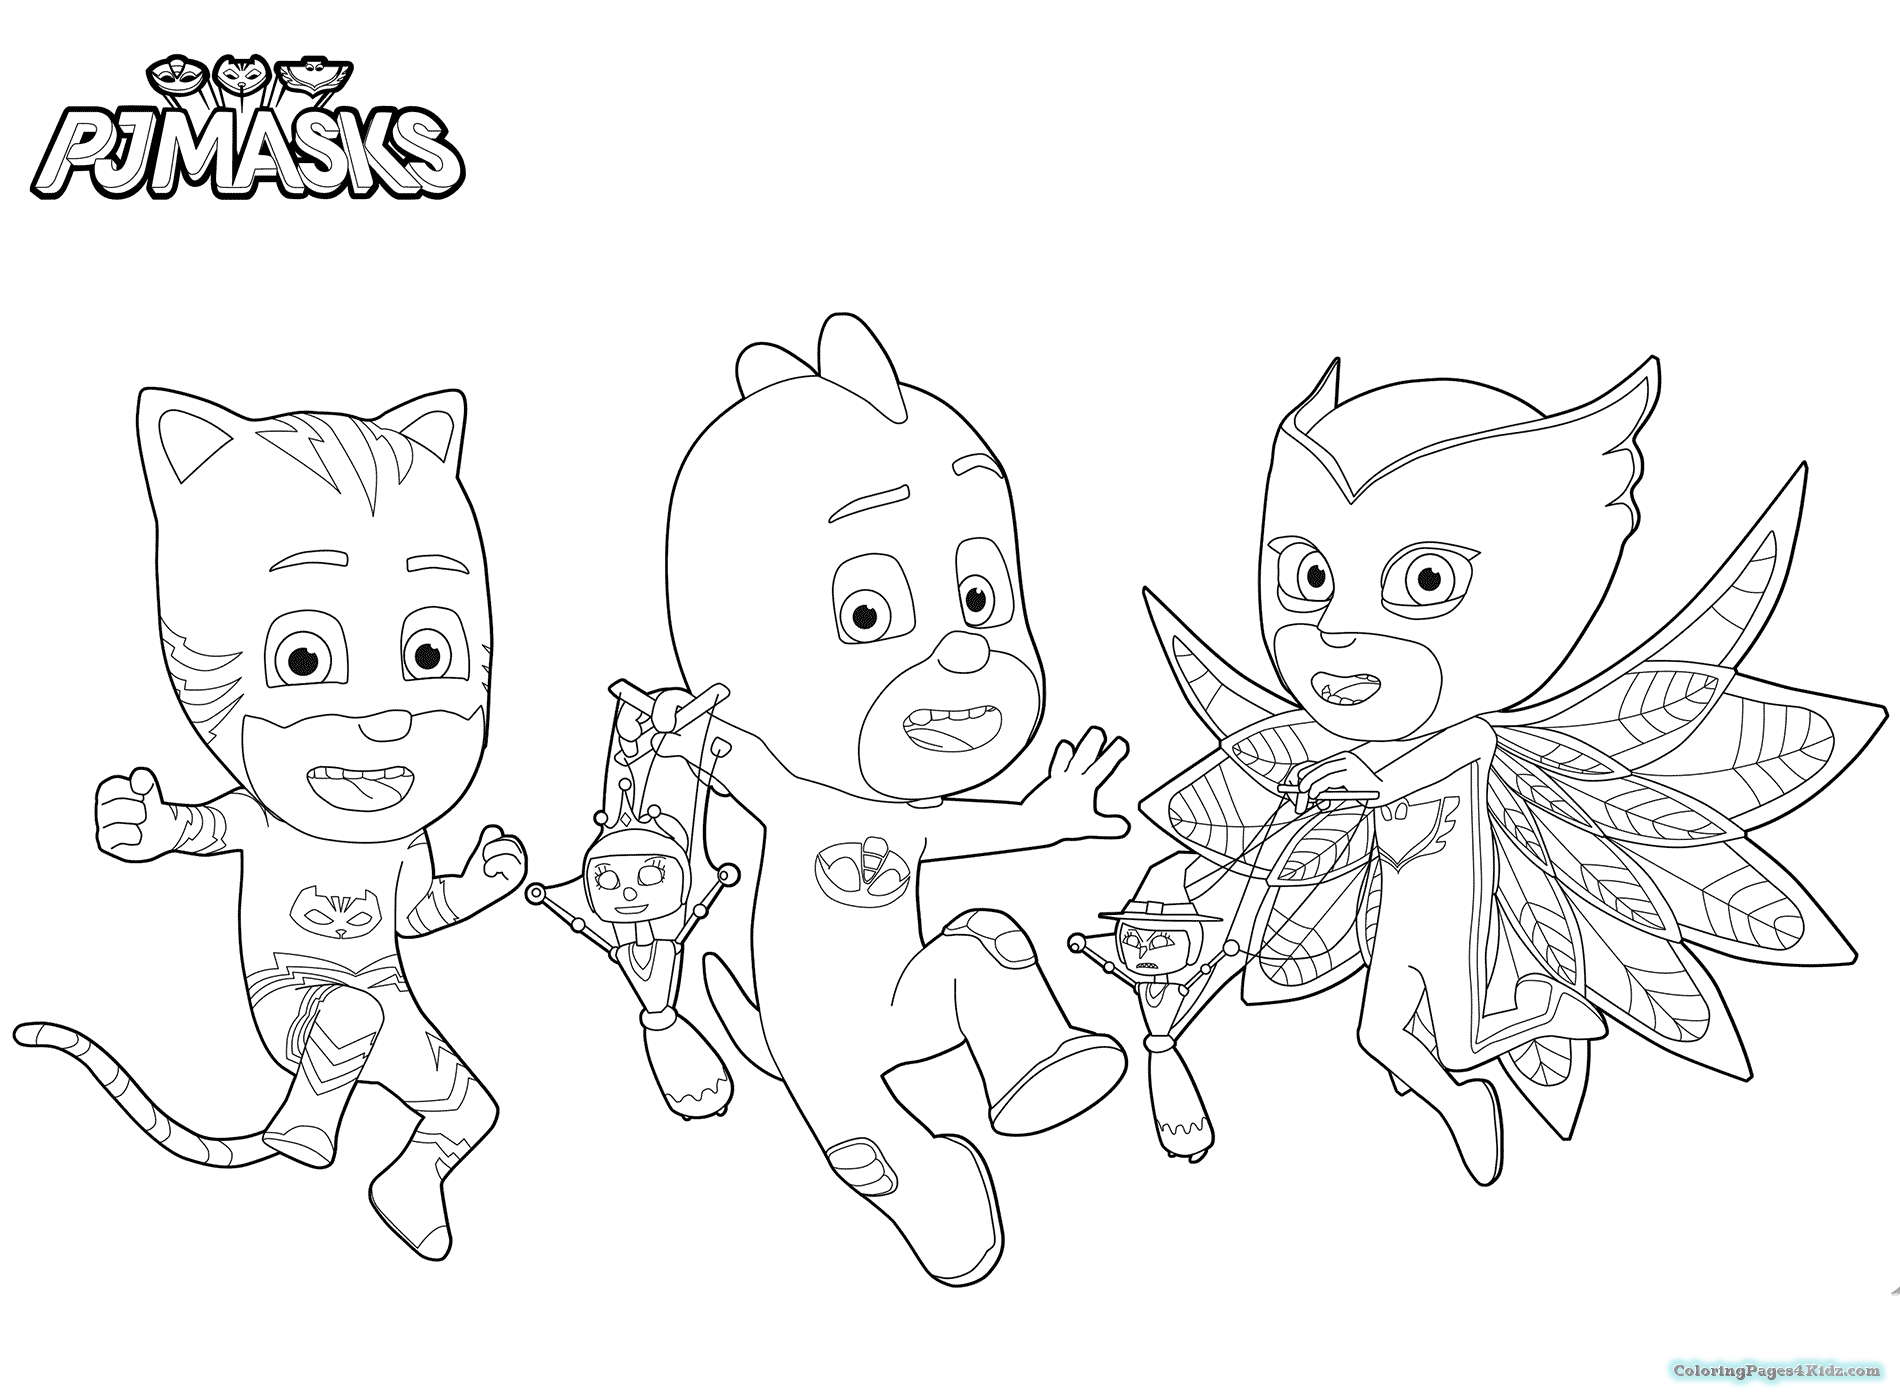 1900x1400 Pj Masks Coloring Pages Coloring Pages For Kids